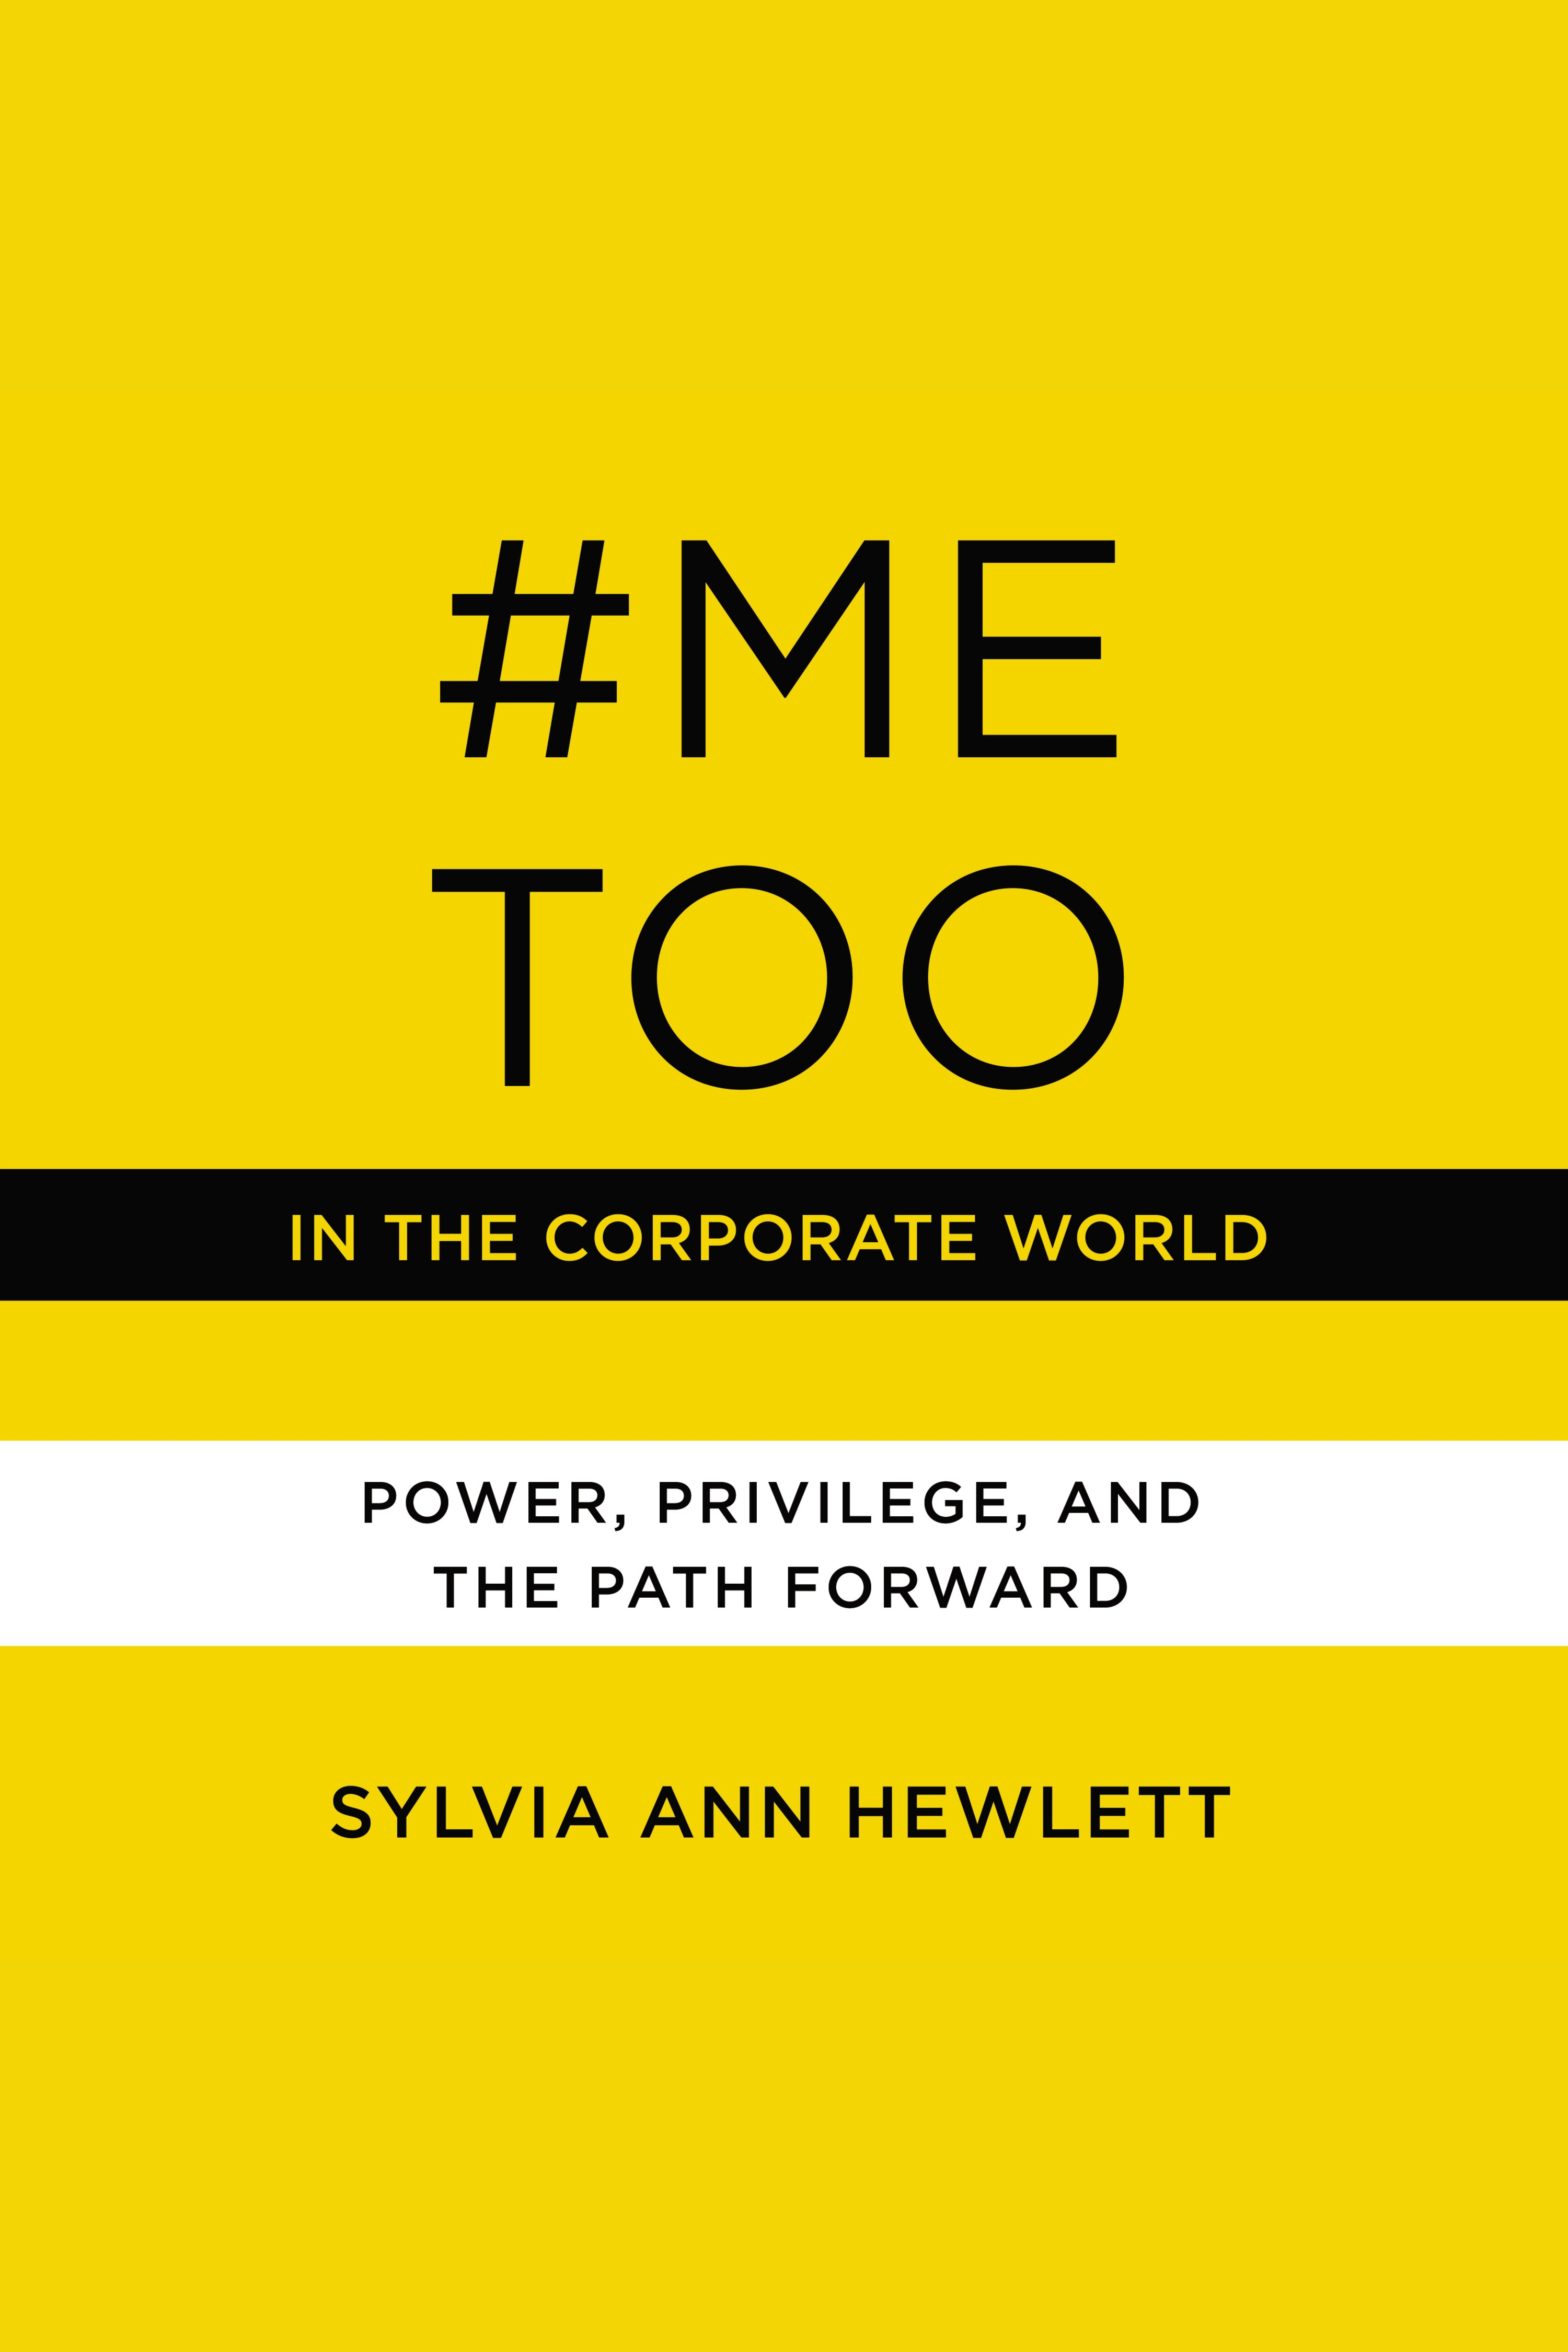 #MeToo in the corporate world cover image